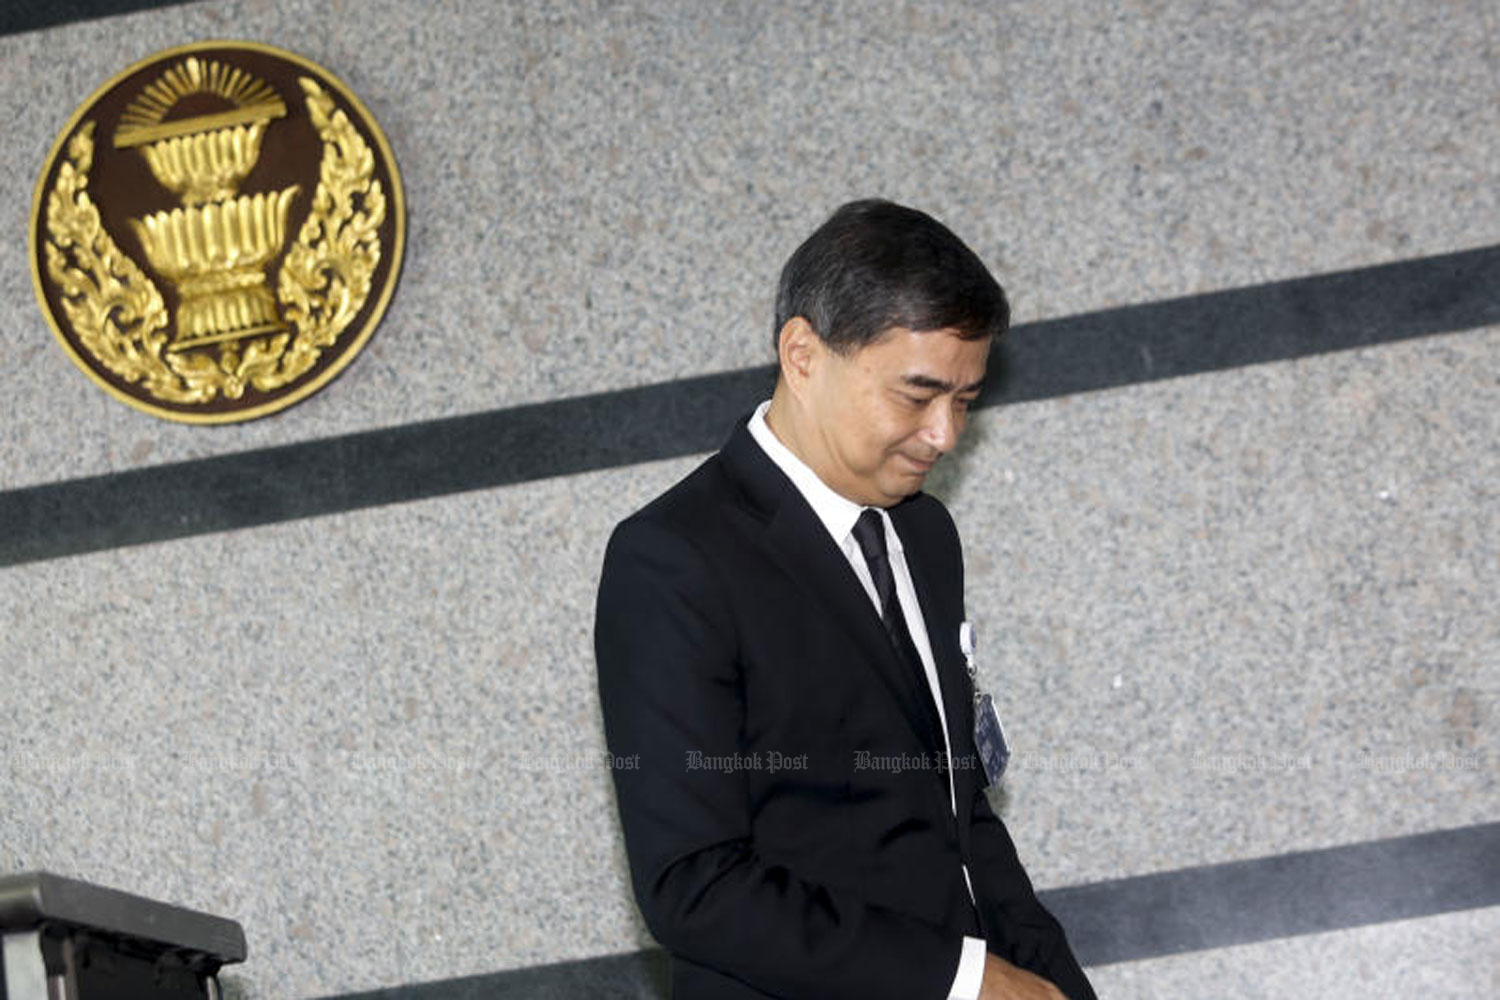 Former Democrat Party leader Abhisit Vejjajiva leaves the podium outside the parliamentary chamber at TOT Plc's headquarters in Bangkok after announcing his resignation as MP on Wednesday morning. (Photo by Pattarapong Chatpattarasill)